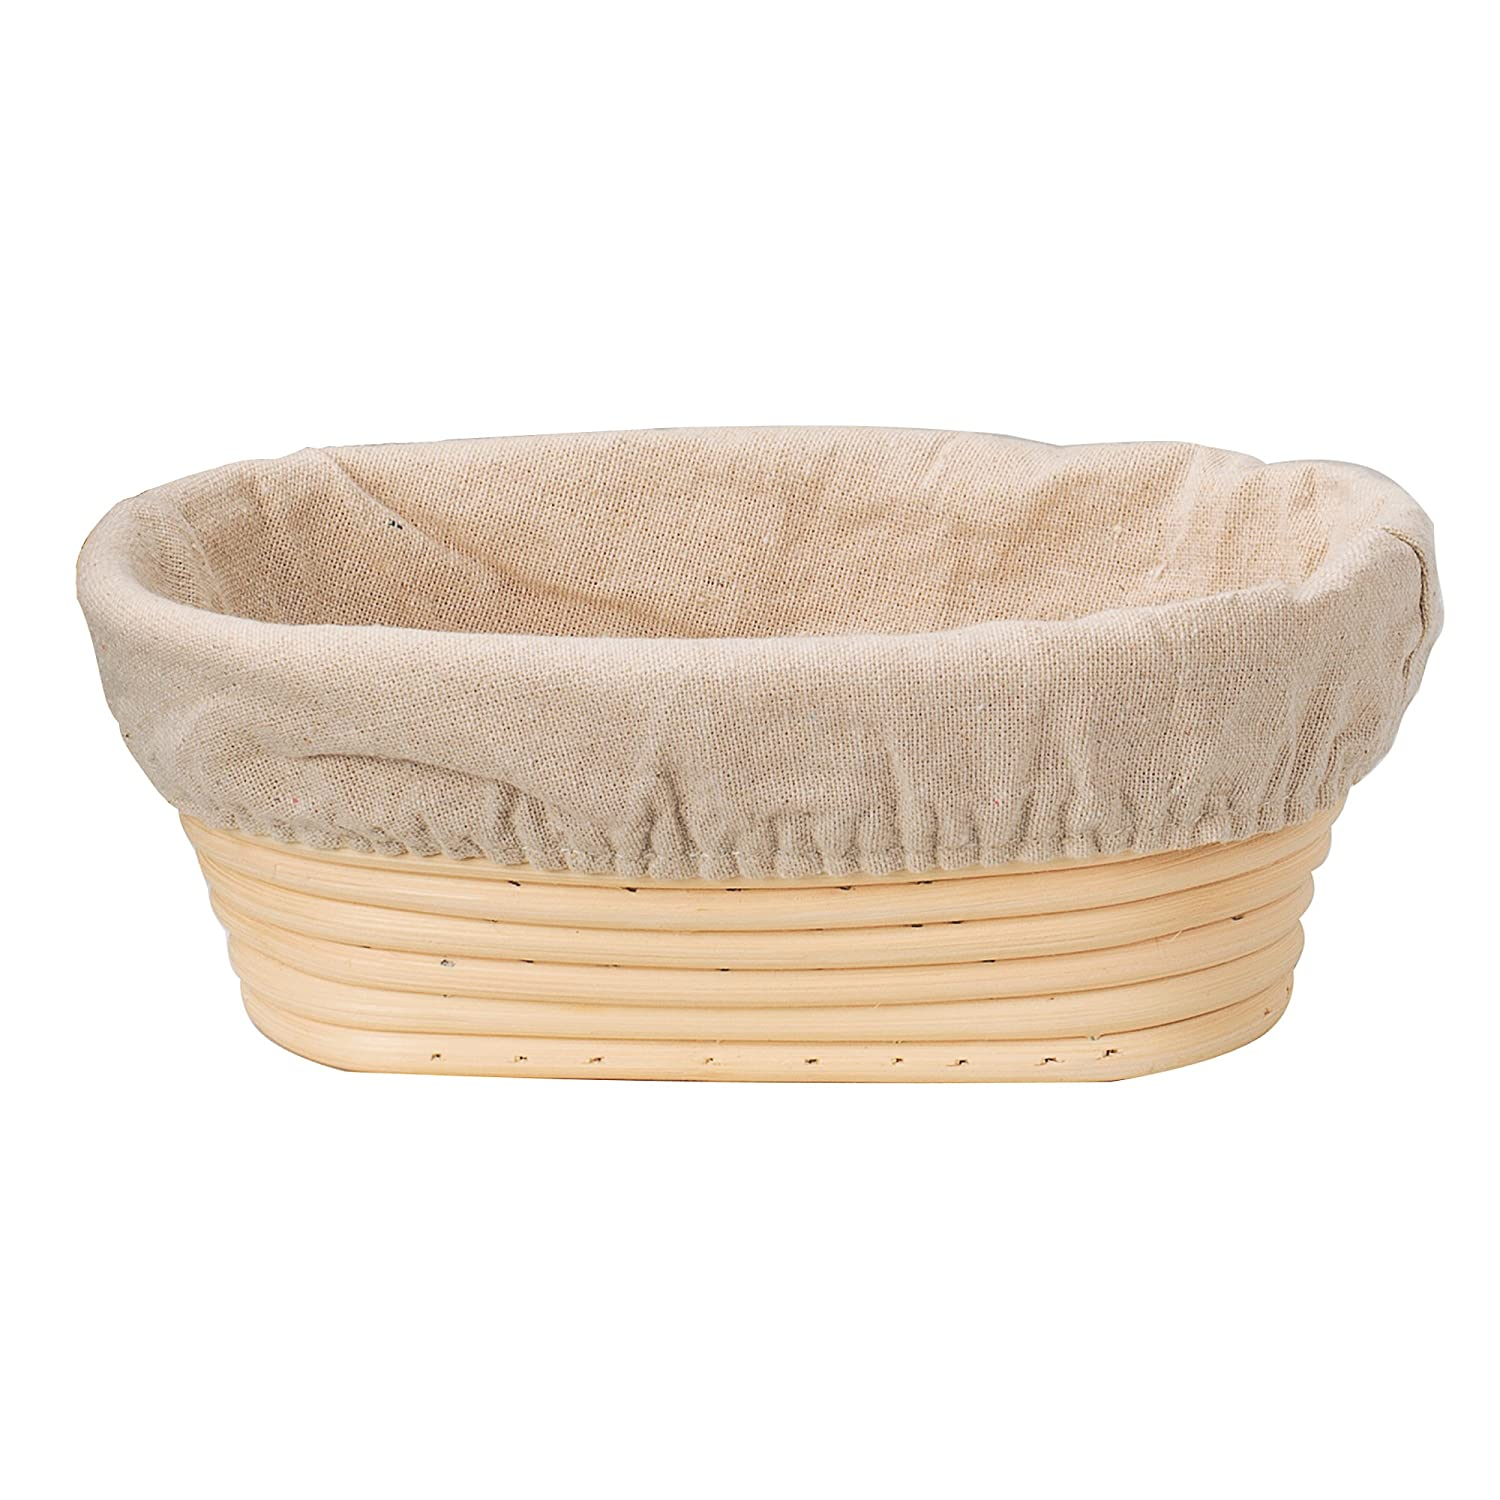 DOYOLLA 1pcs 8.5 Round Banneton Brotform Bread Dough Proofing Rising Rattan Basket & Liner by DOYOLLA bhmcixIq